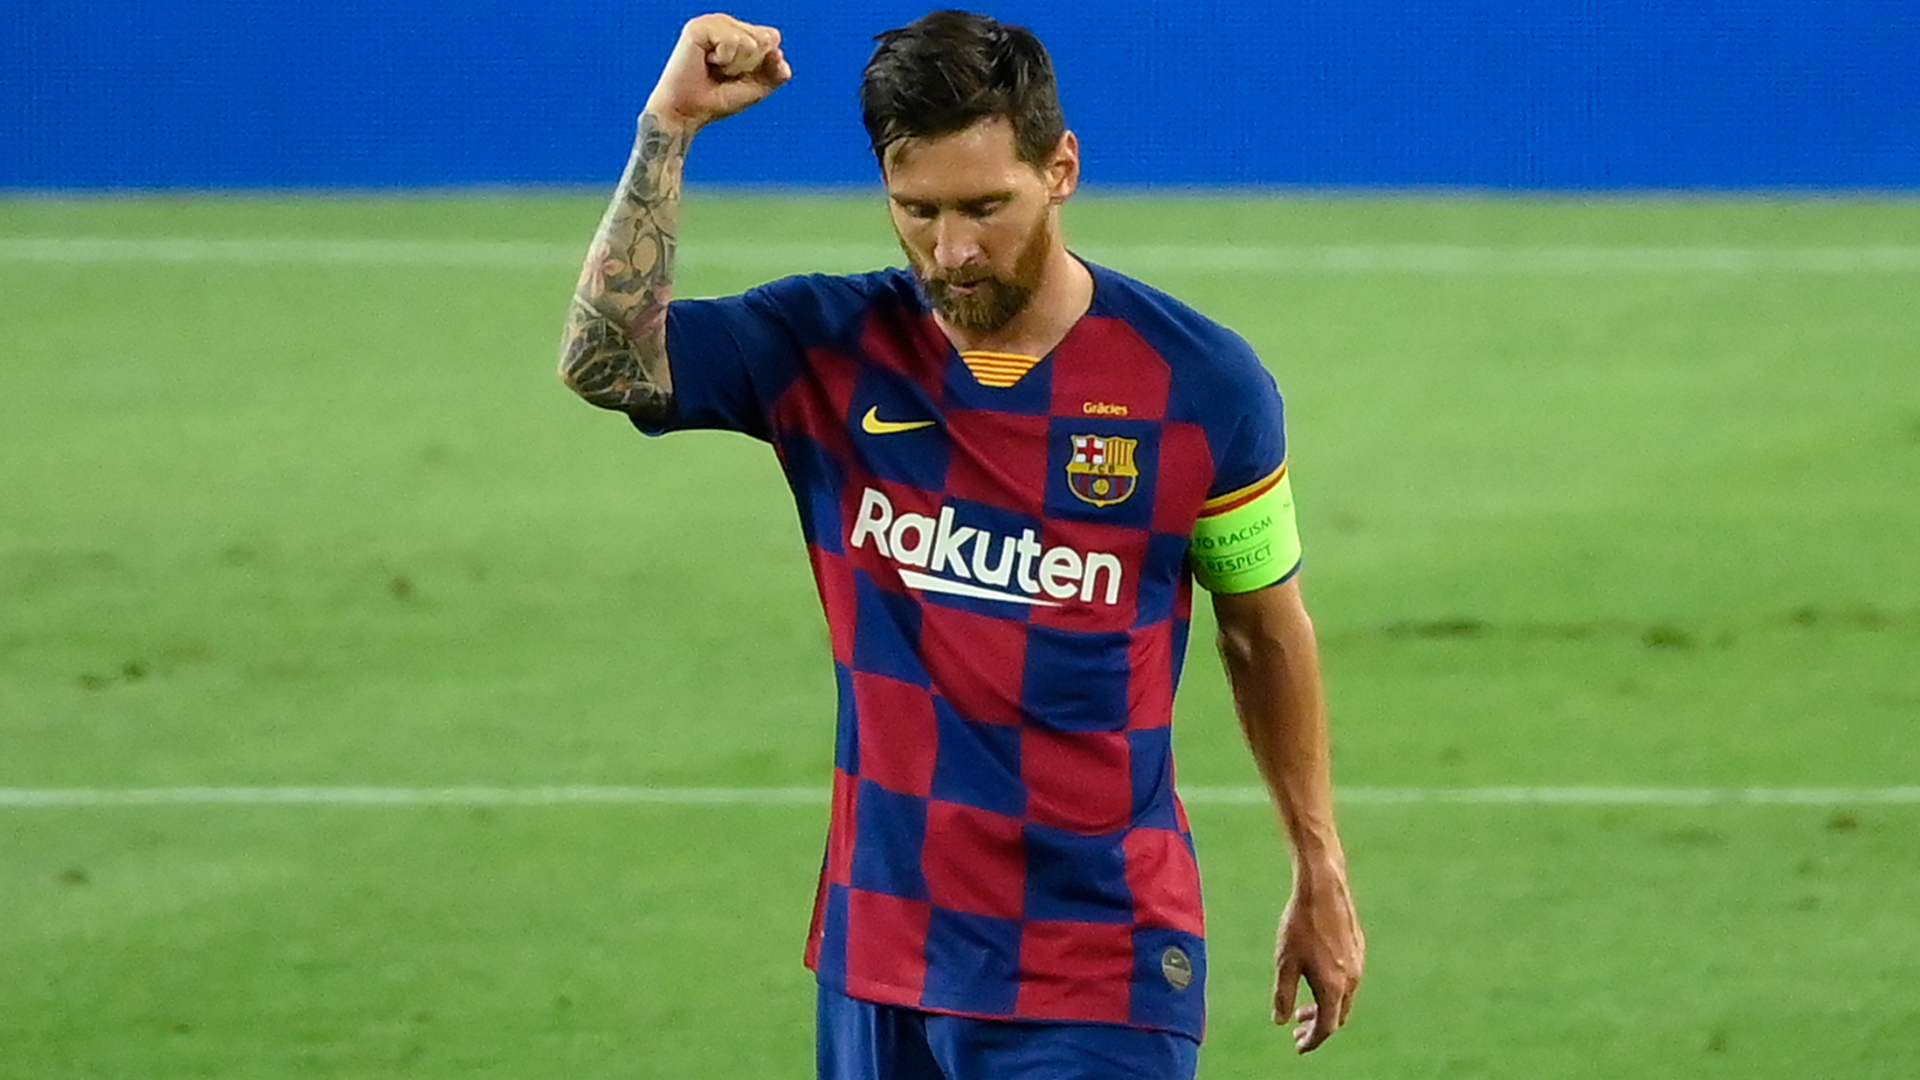 Barcelona is a Champions League outsider, but with Messi it always has a chance